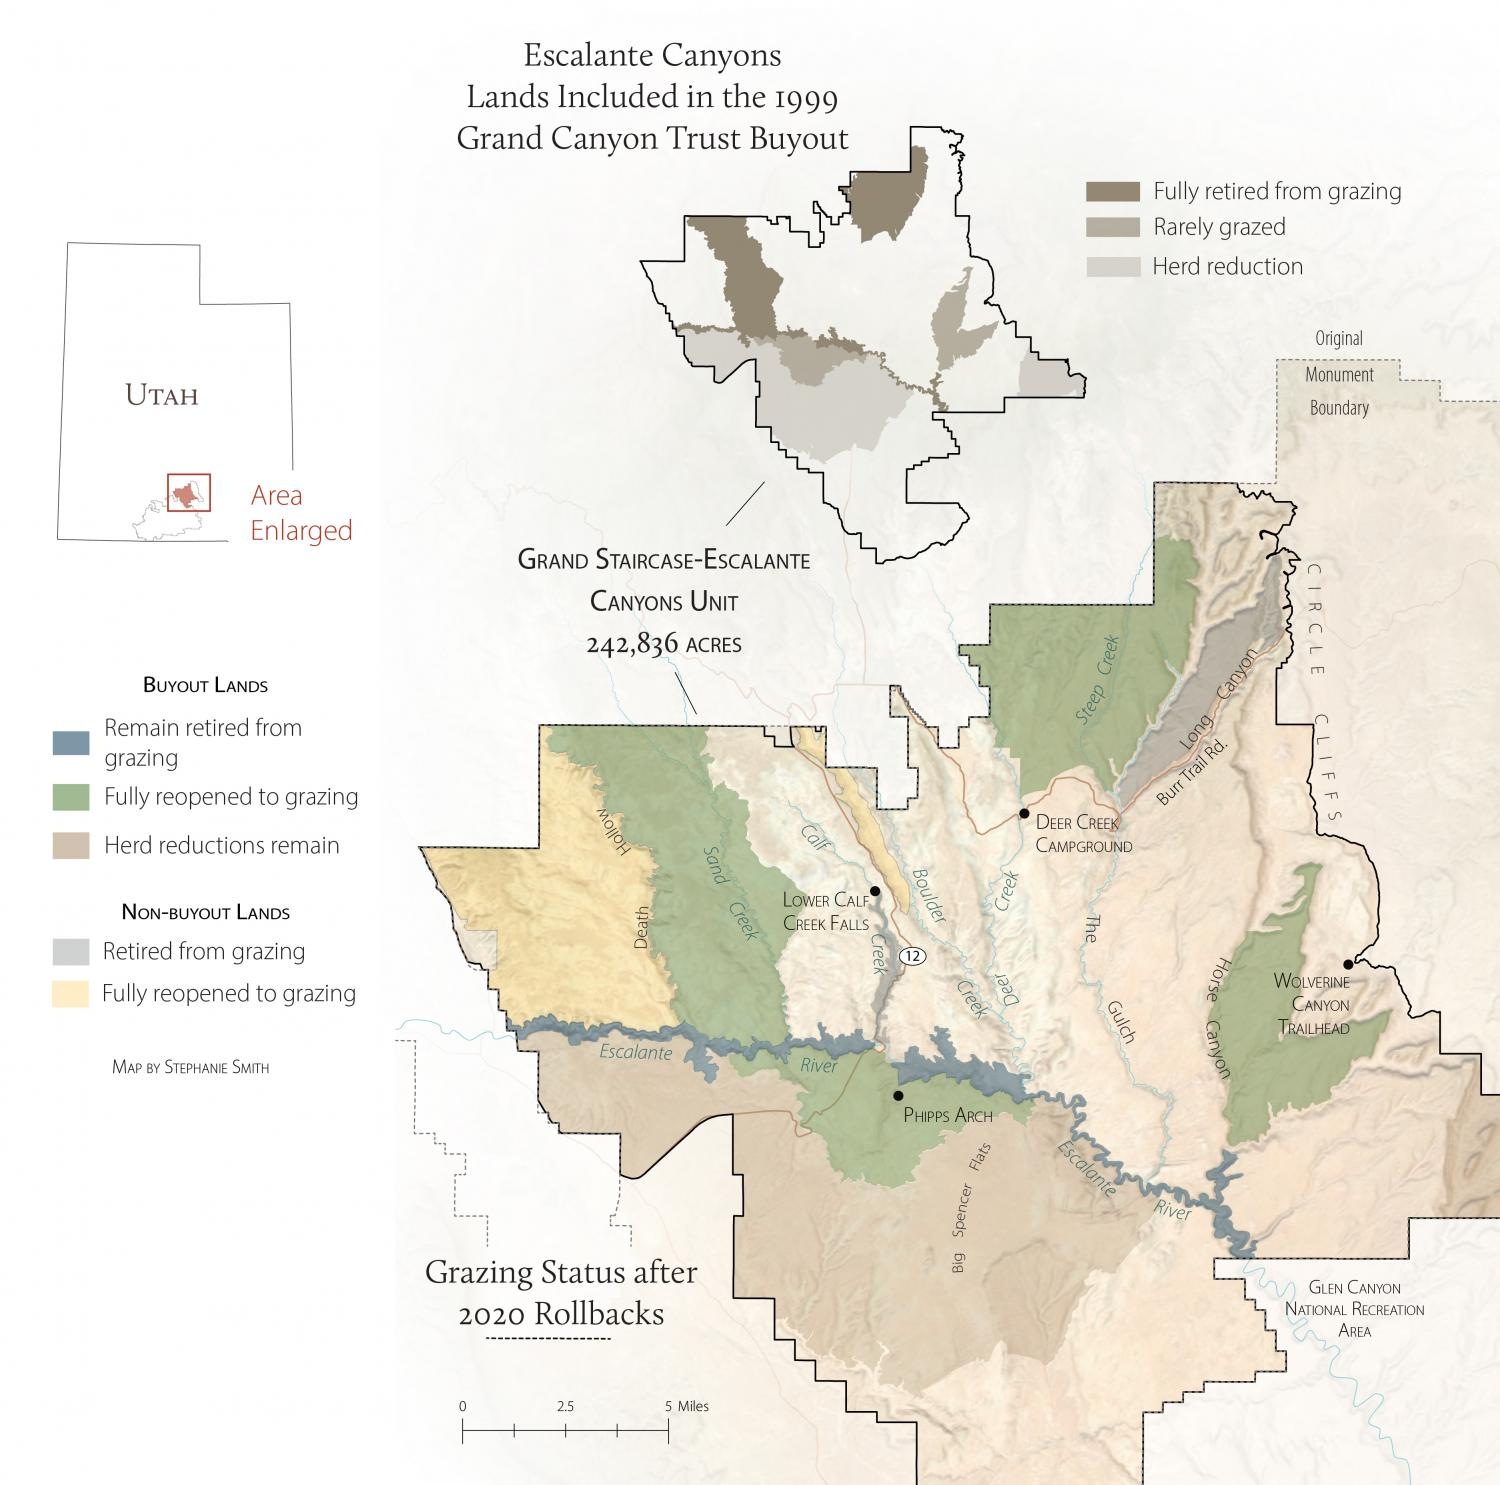 Map of the 2020 grazing status changes in Grand Staircase-Escalante National Monument.